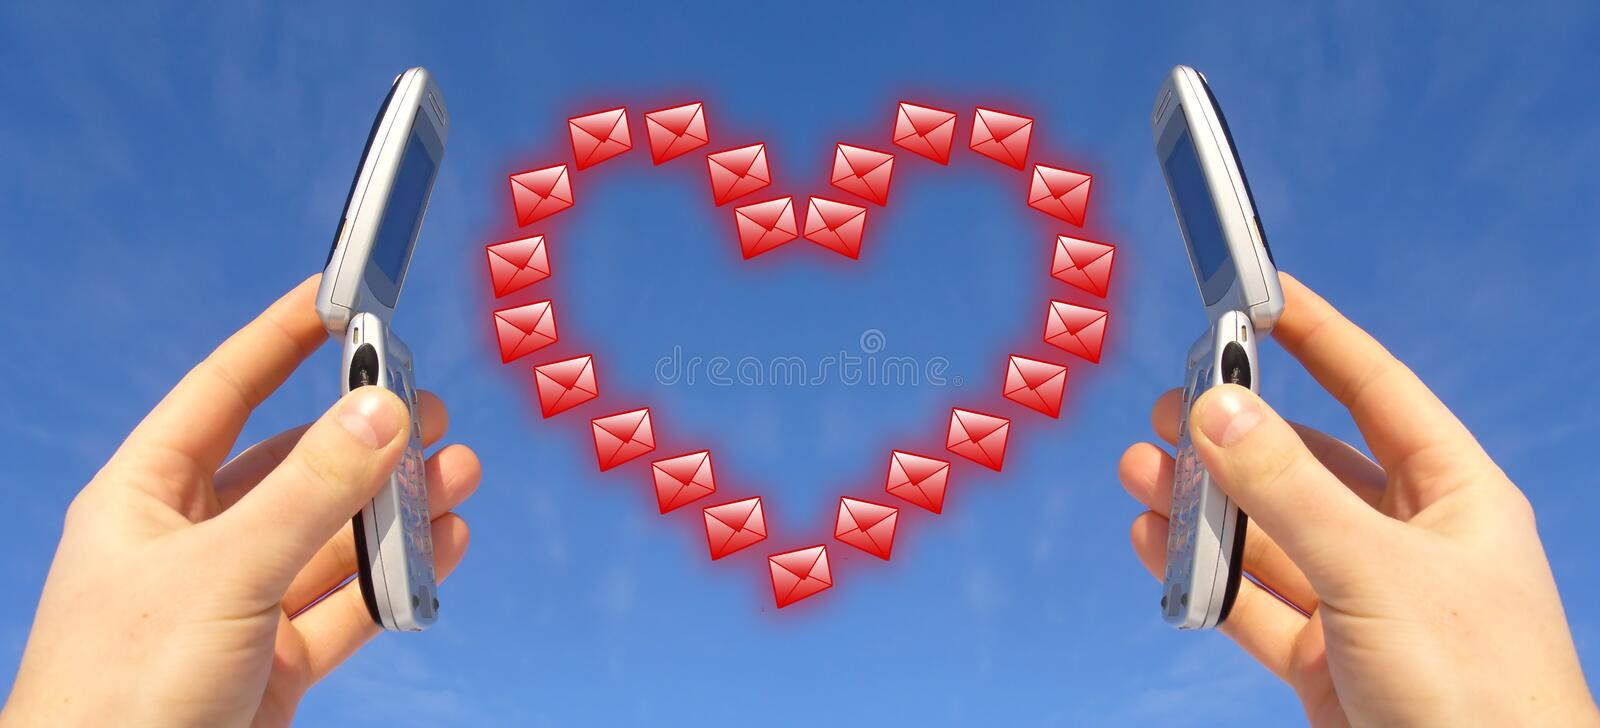 Wireless Love Connection. Two wireless cellphones held against a blue background with a red heart made of small envelopes symbolizing messages of love shared by stock photo